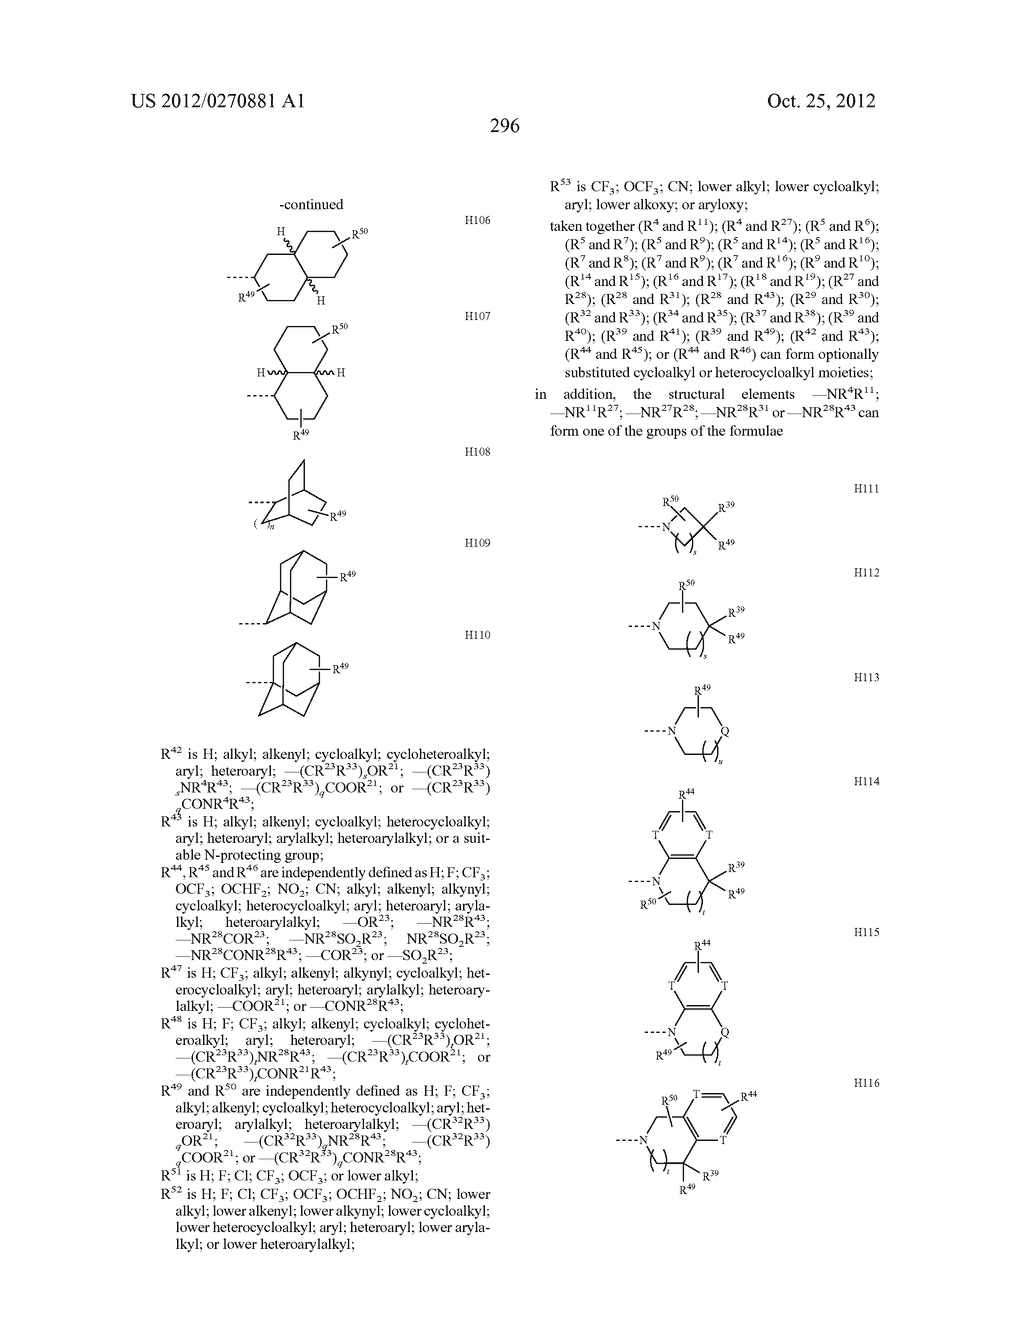 CONFORMATIONALLY CONSTRAINED, FULLY SYNTHETIC MACROCYCLIC COMPOUNDS - diagram, schematic, and image 299